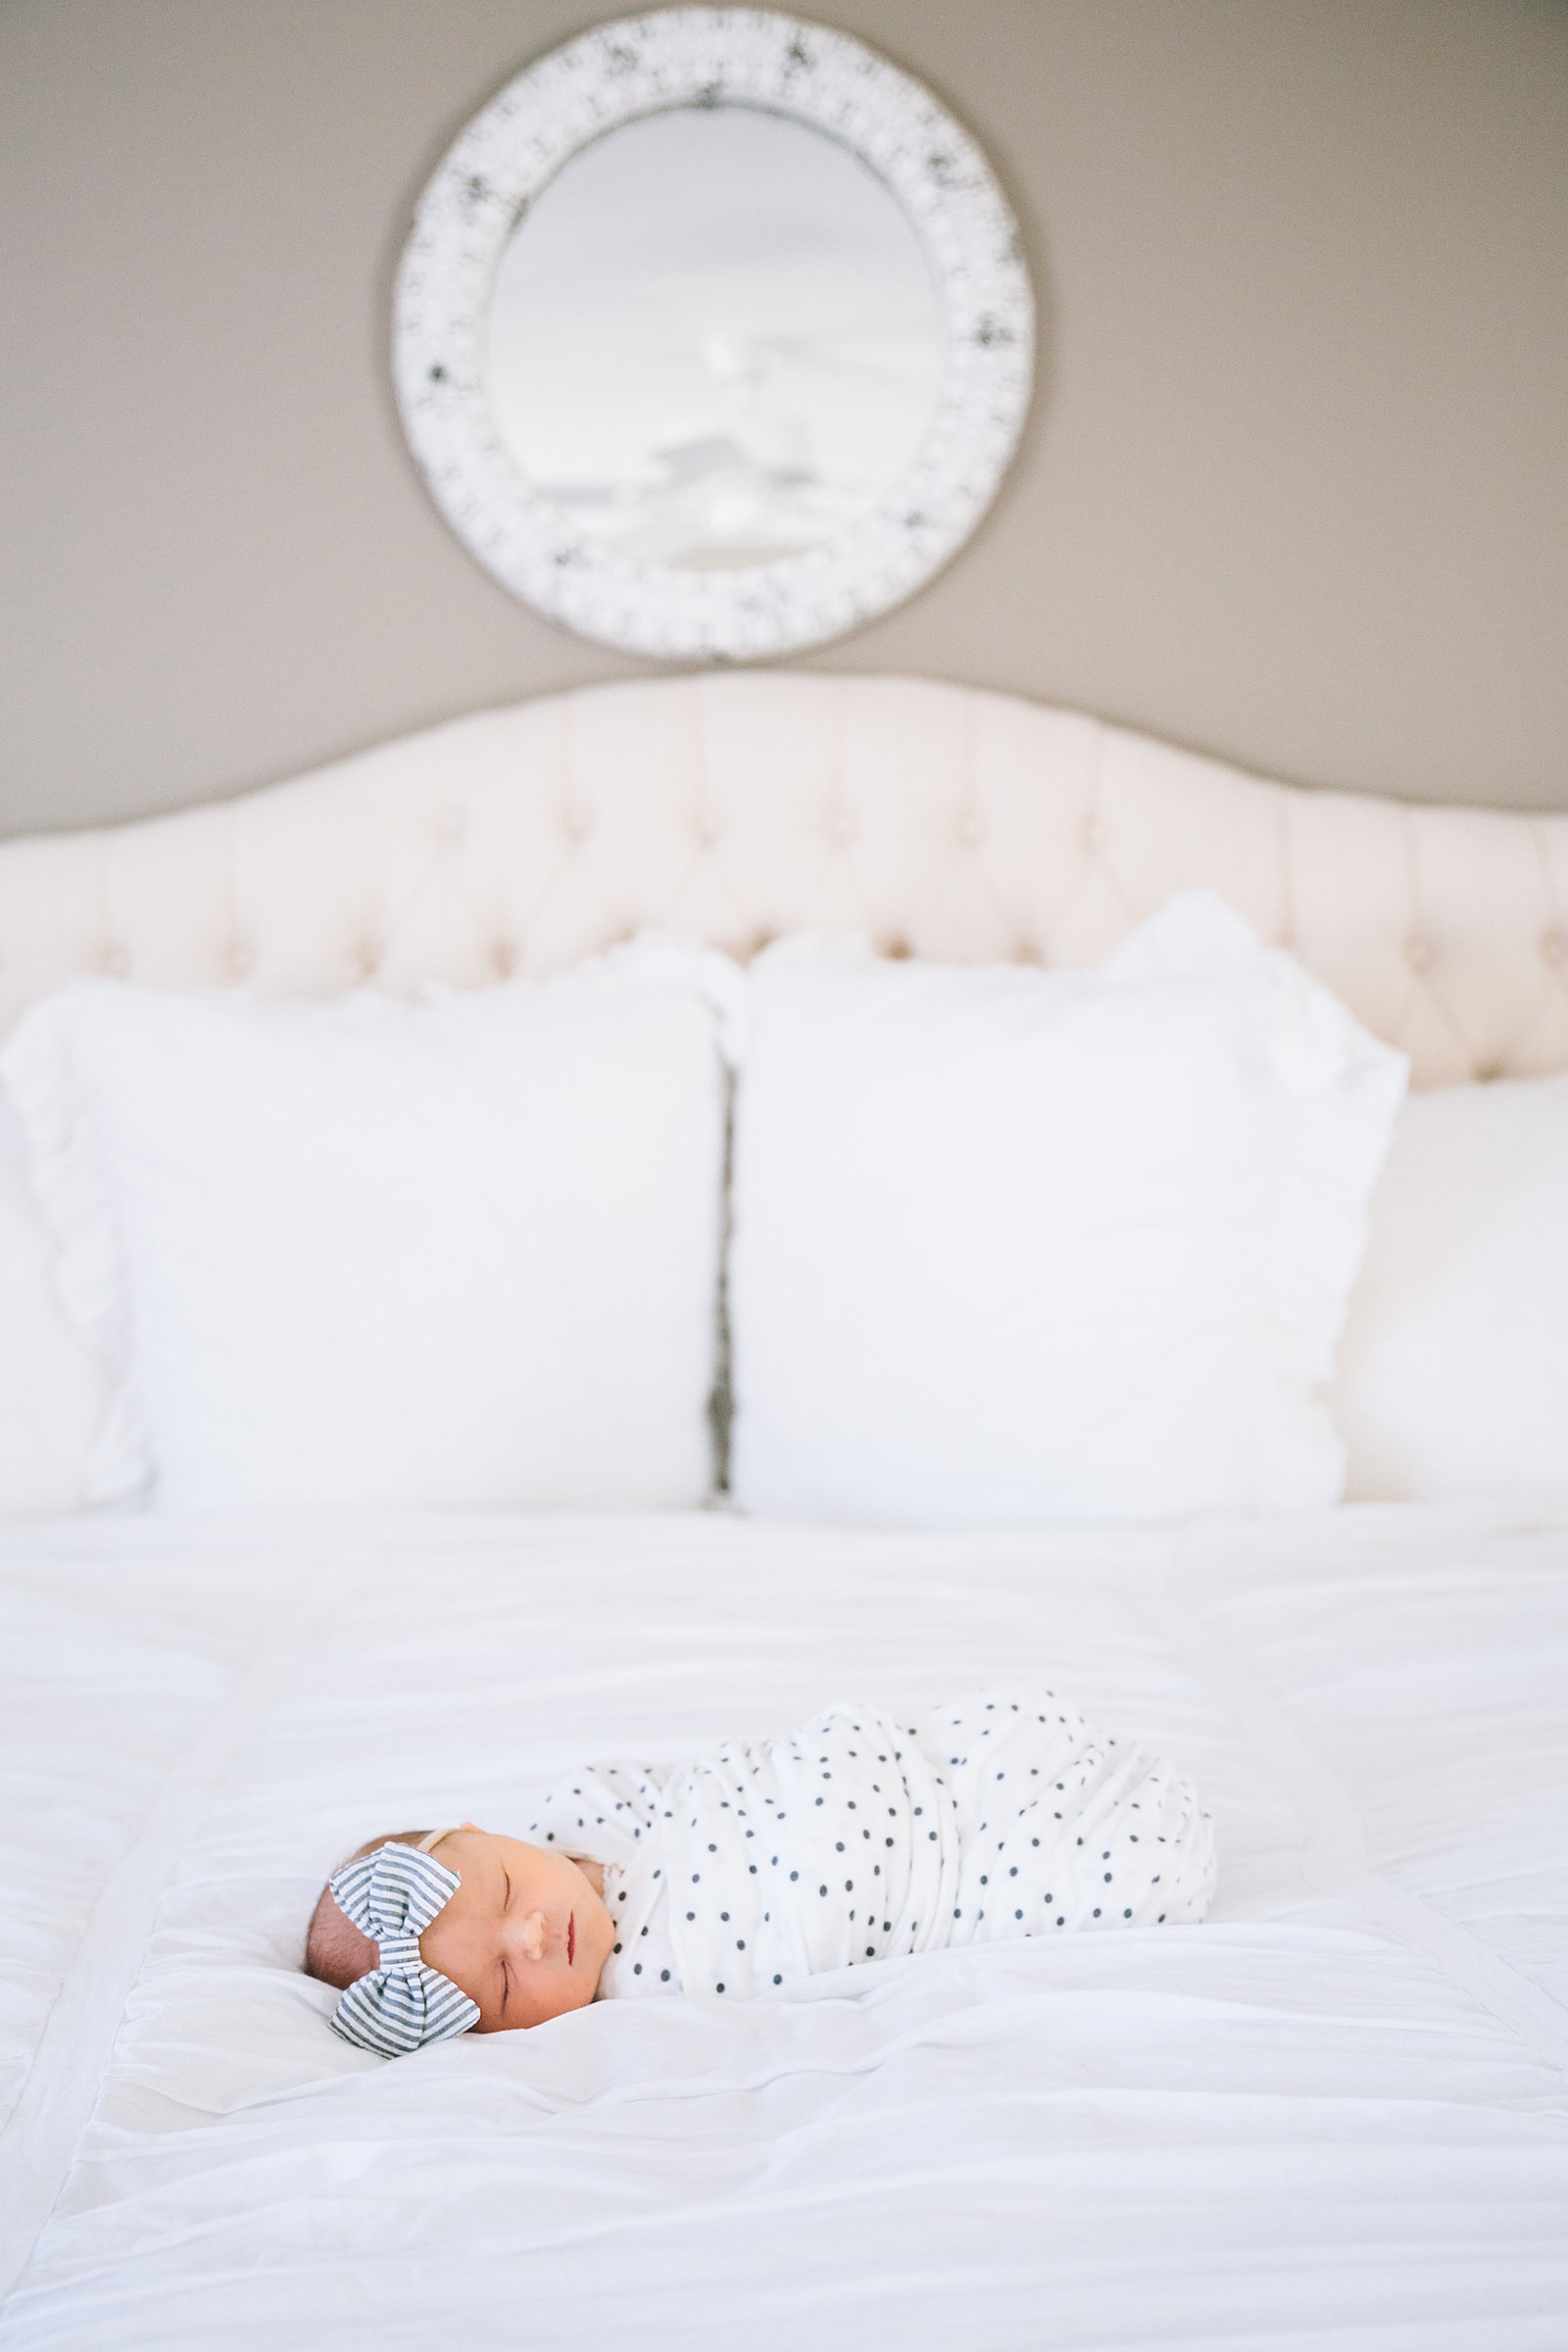 San-Juan-Capistrano-Beach-Newborn-Lifestyle-Photos_18